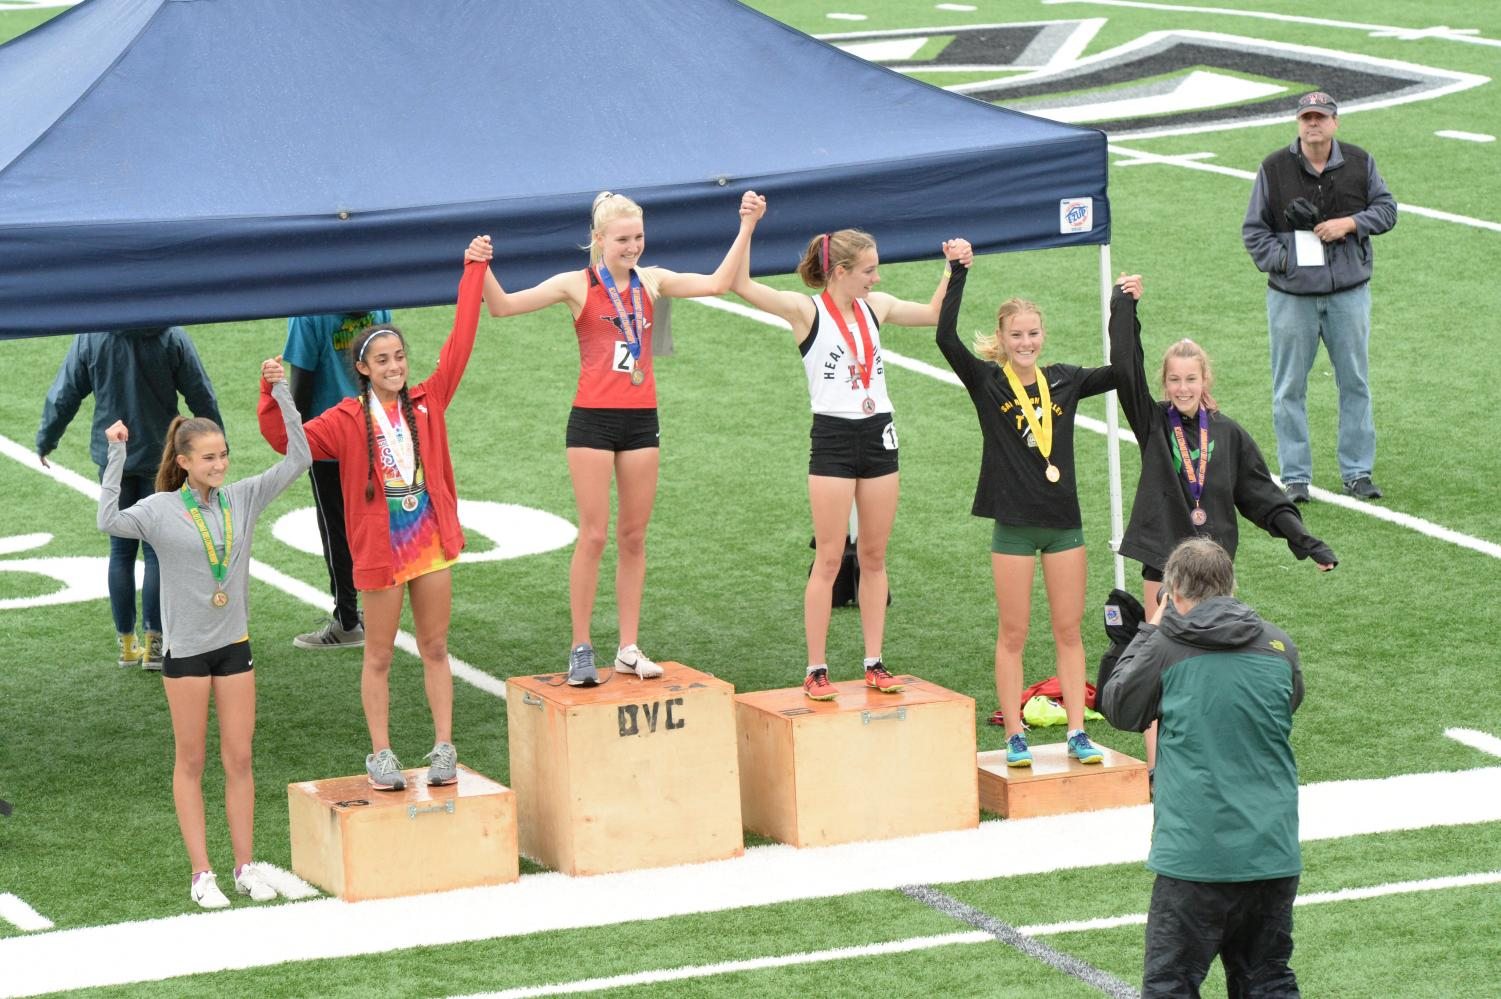 Senior Kelli Wilson stands in the middle of the podium, grinning as she wins NCS in the 3200-meter race. She committed to Duke University in October and will run for the cross country and track teams in the fall.